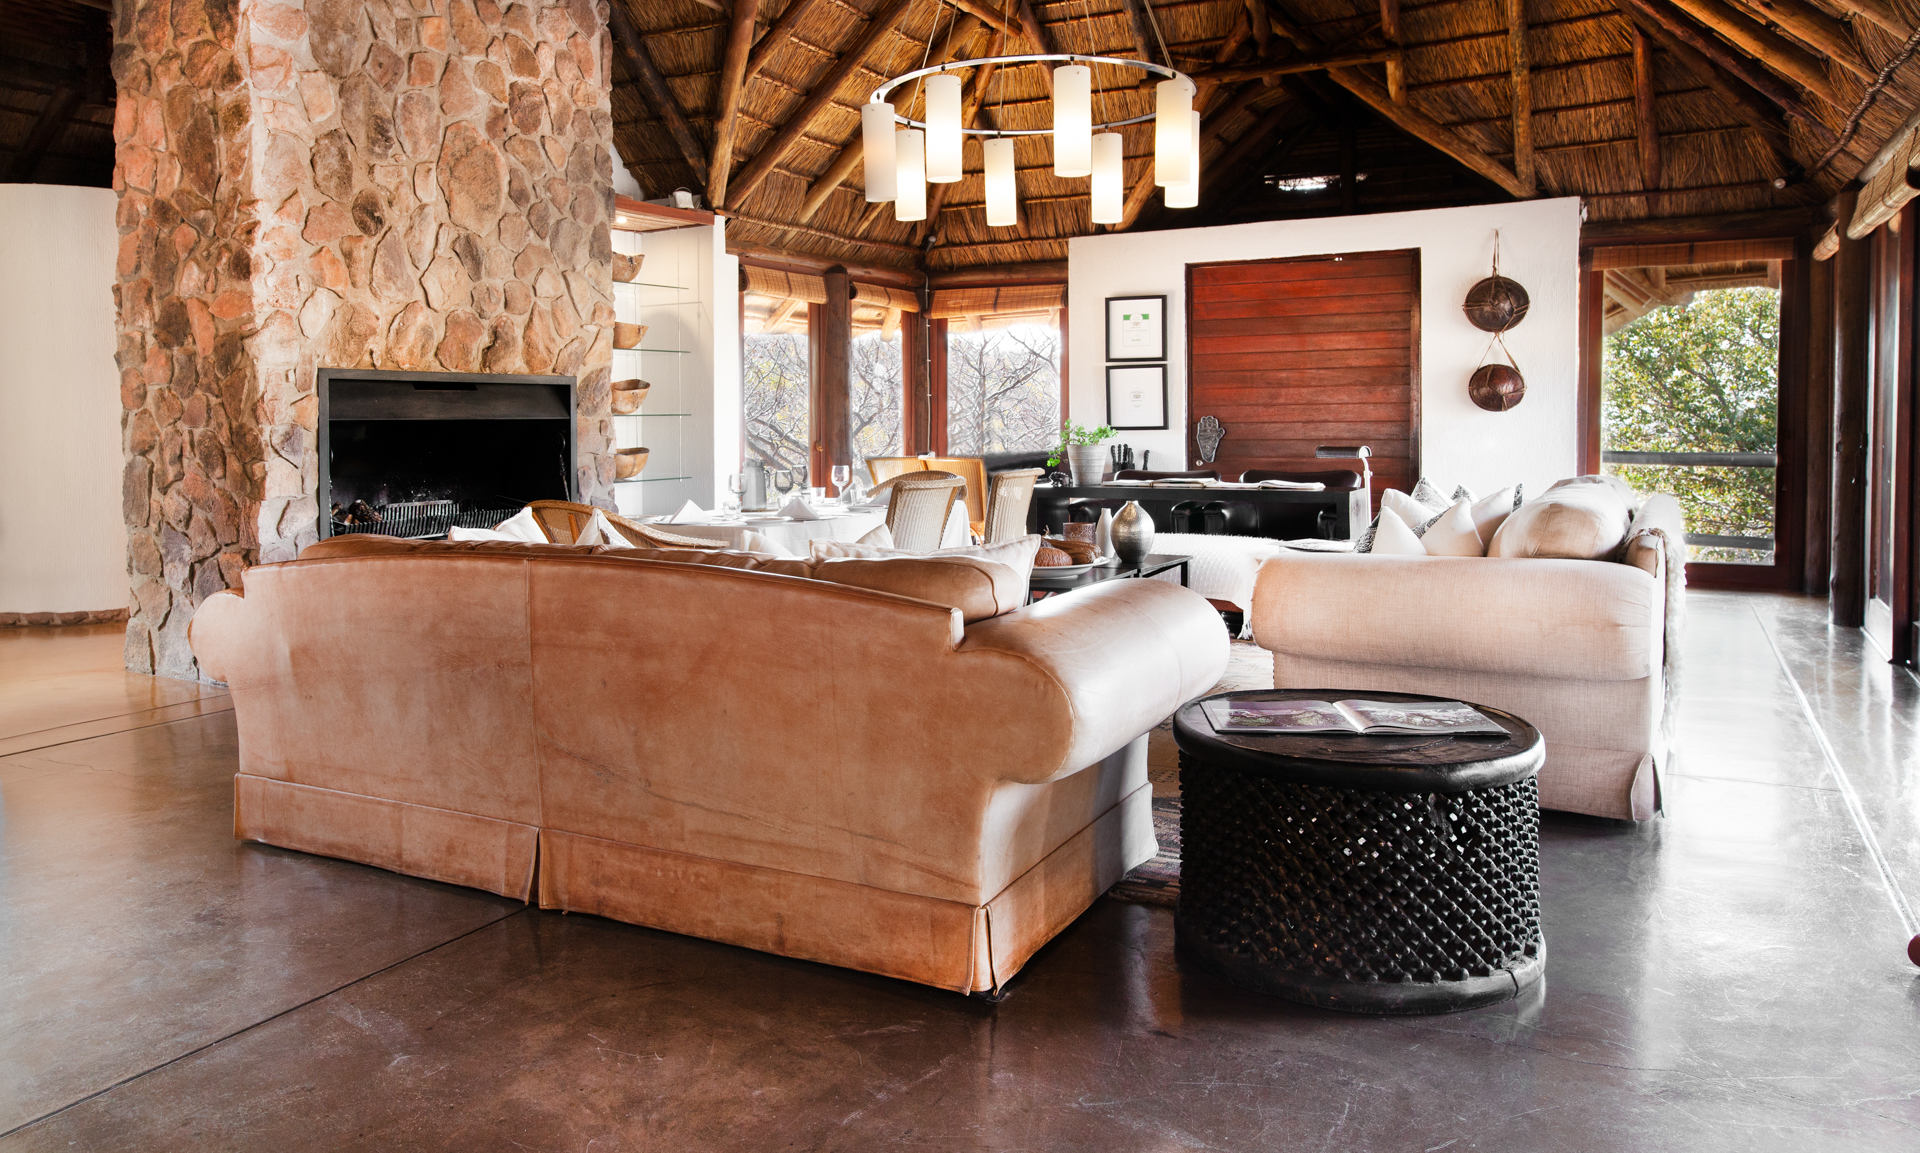 PEACE AND TRANQUILITY: Next stop was Tshwene Lodge. There was something about sleeping up in the tree canopy that had me completely relaxed during my stay.